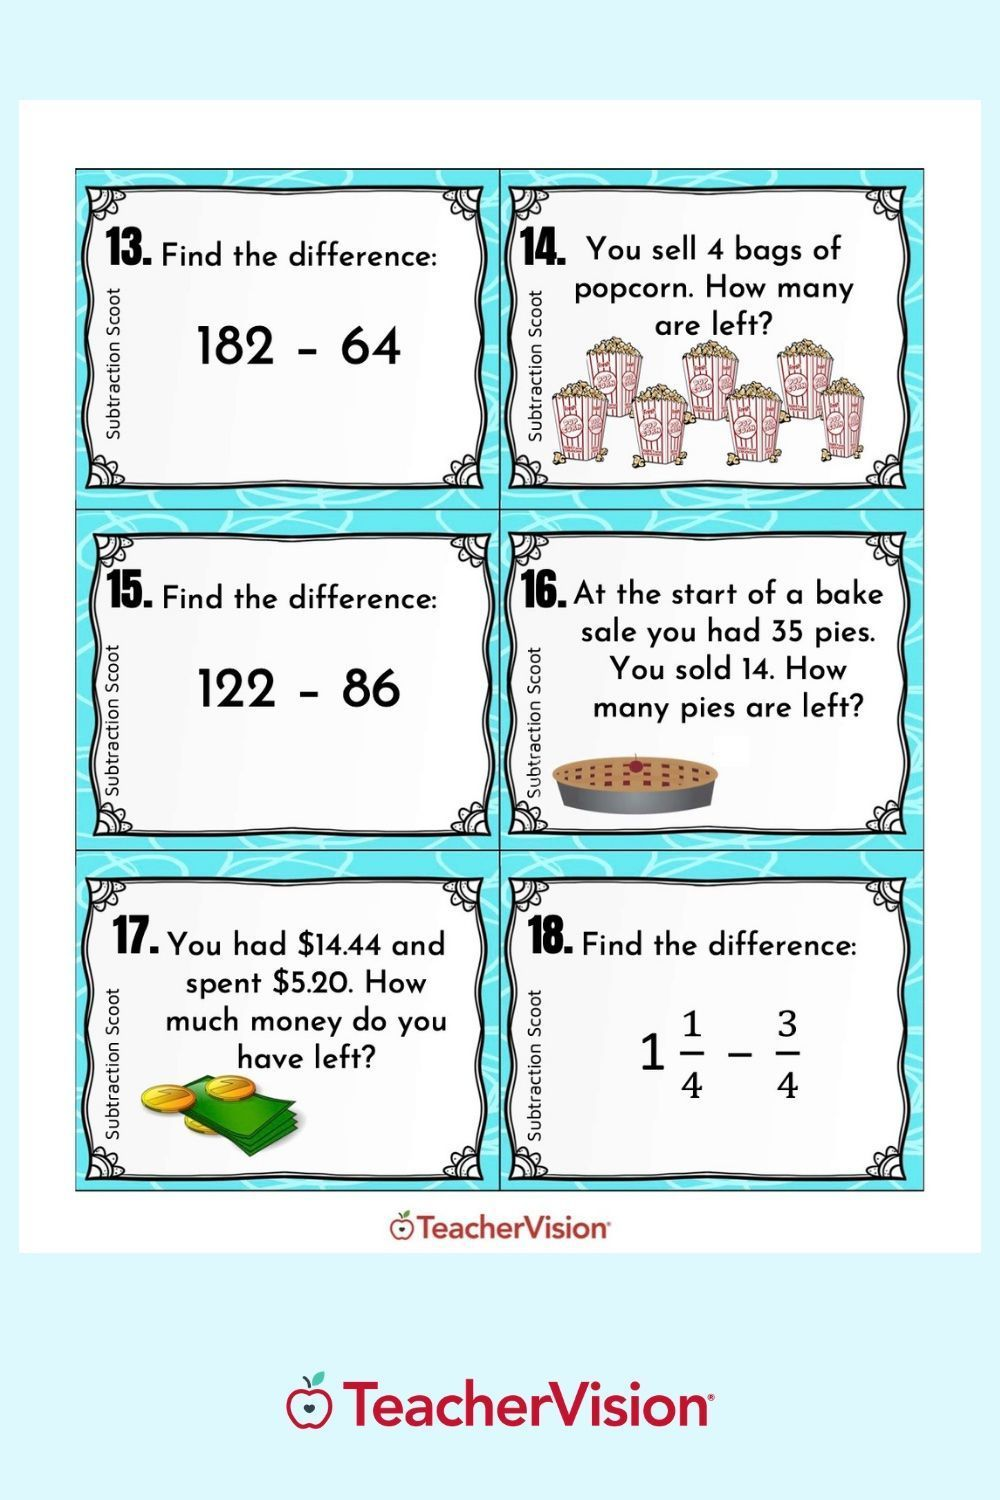 Subtraction Scoot Math Game For Classroom Or Remote Learning In 2021 Math Scoot Math Practice Worksheets Math [ 1500 x 1000 Pixel ]